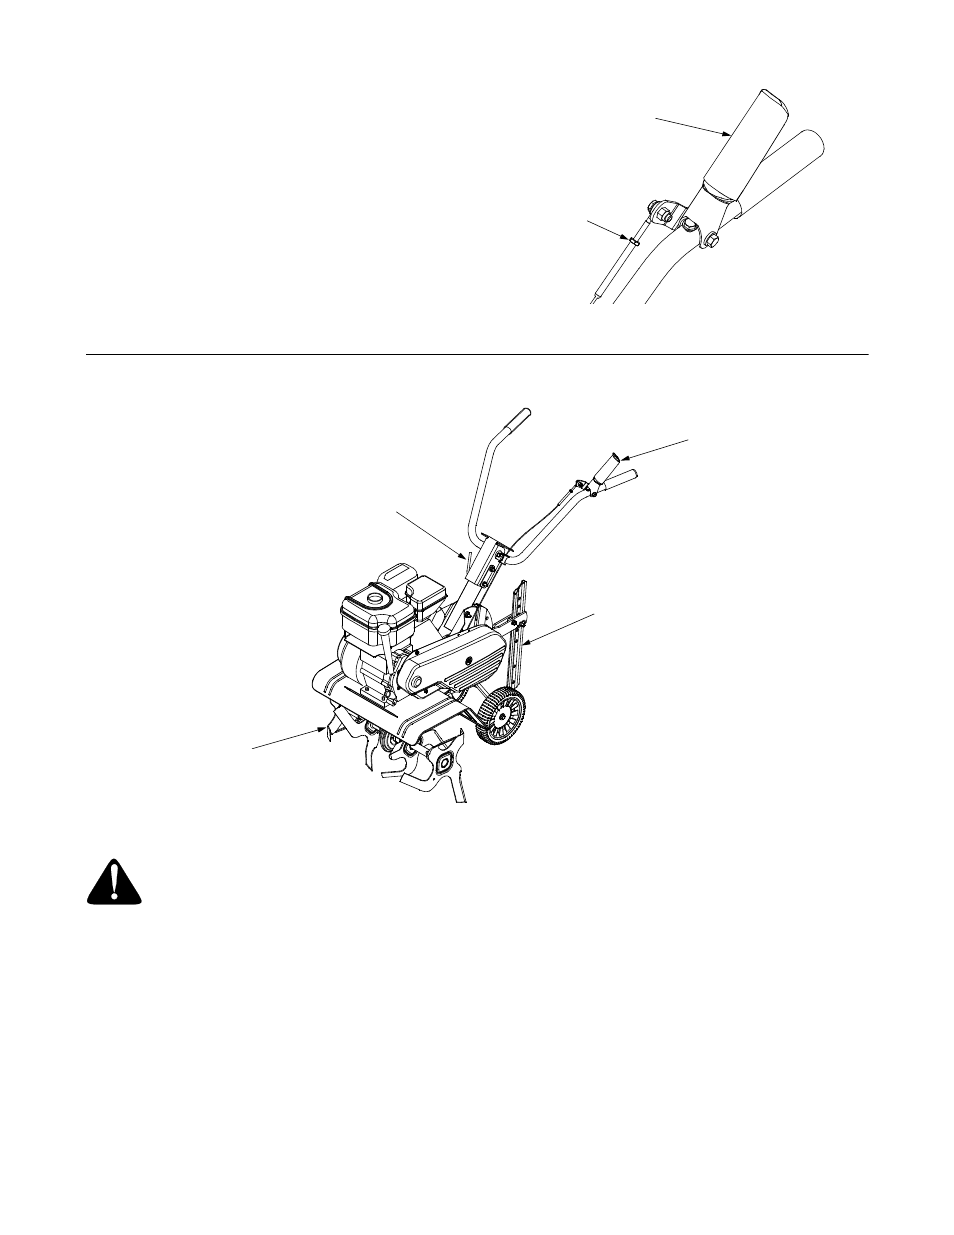 Check Cable Adjustment Tine Clutch Control Depth Stake Mtd Front Tiller 300 User Manual Page 6 20